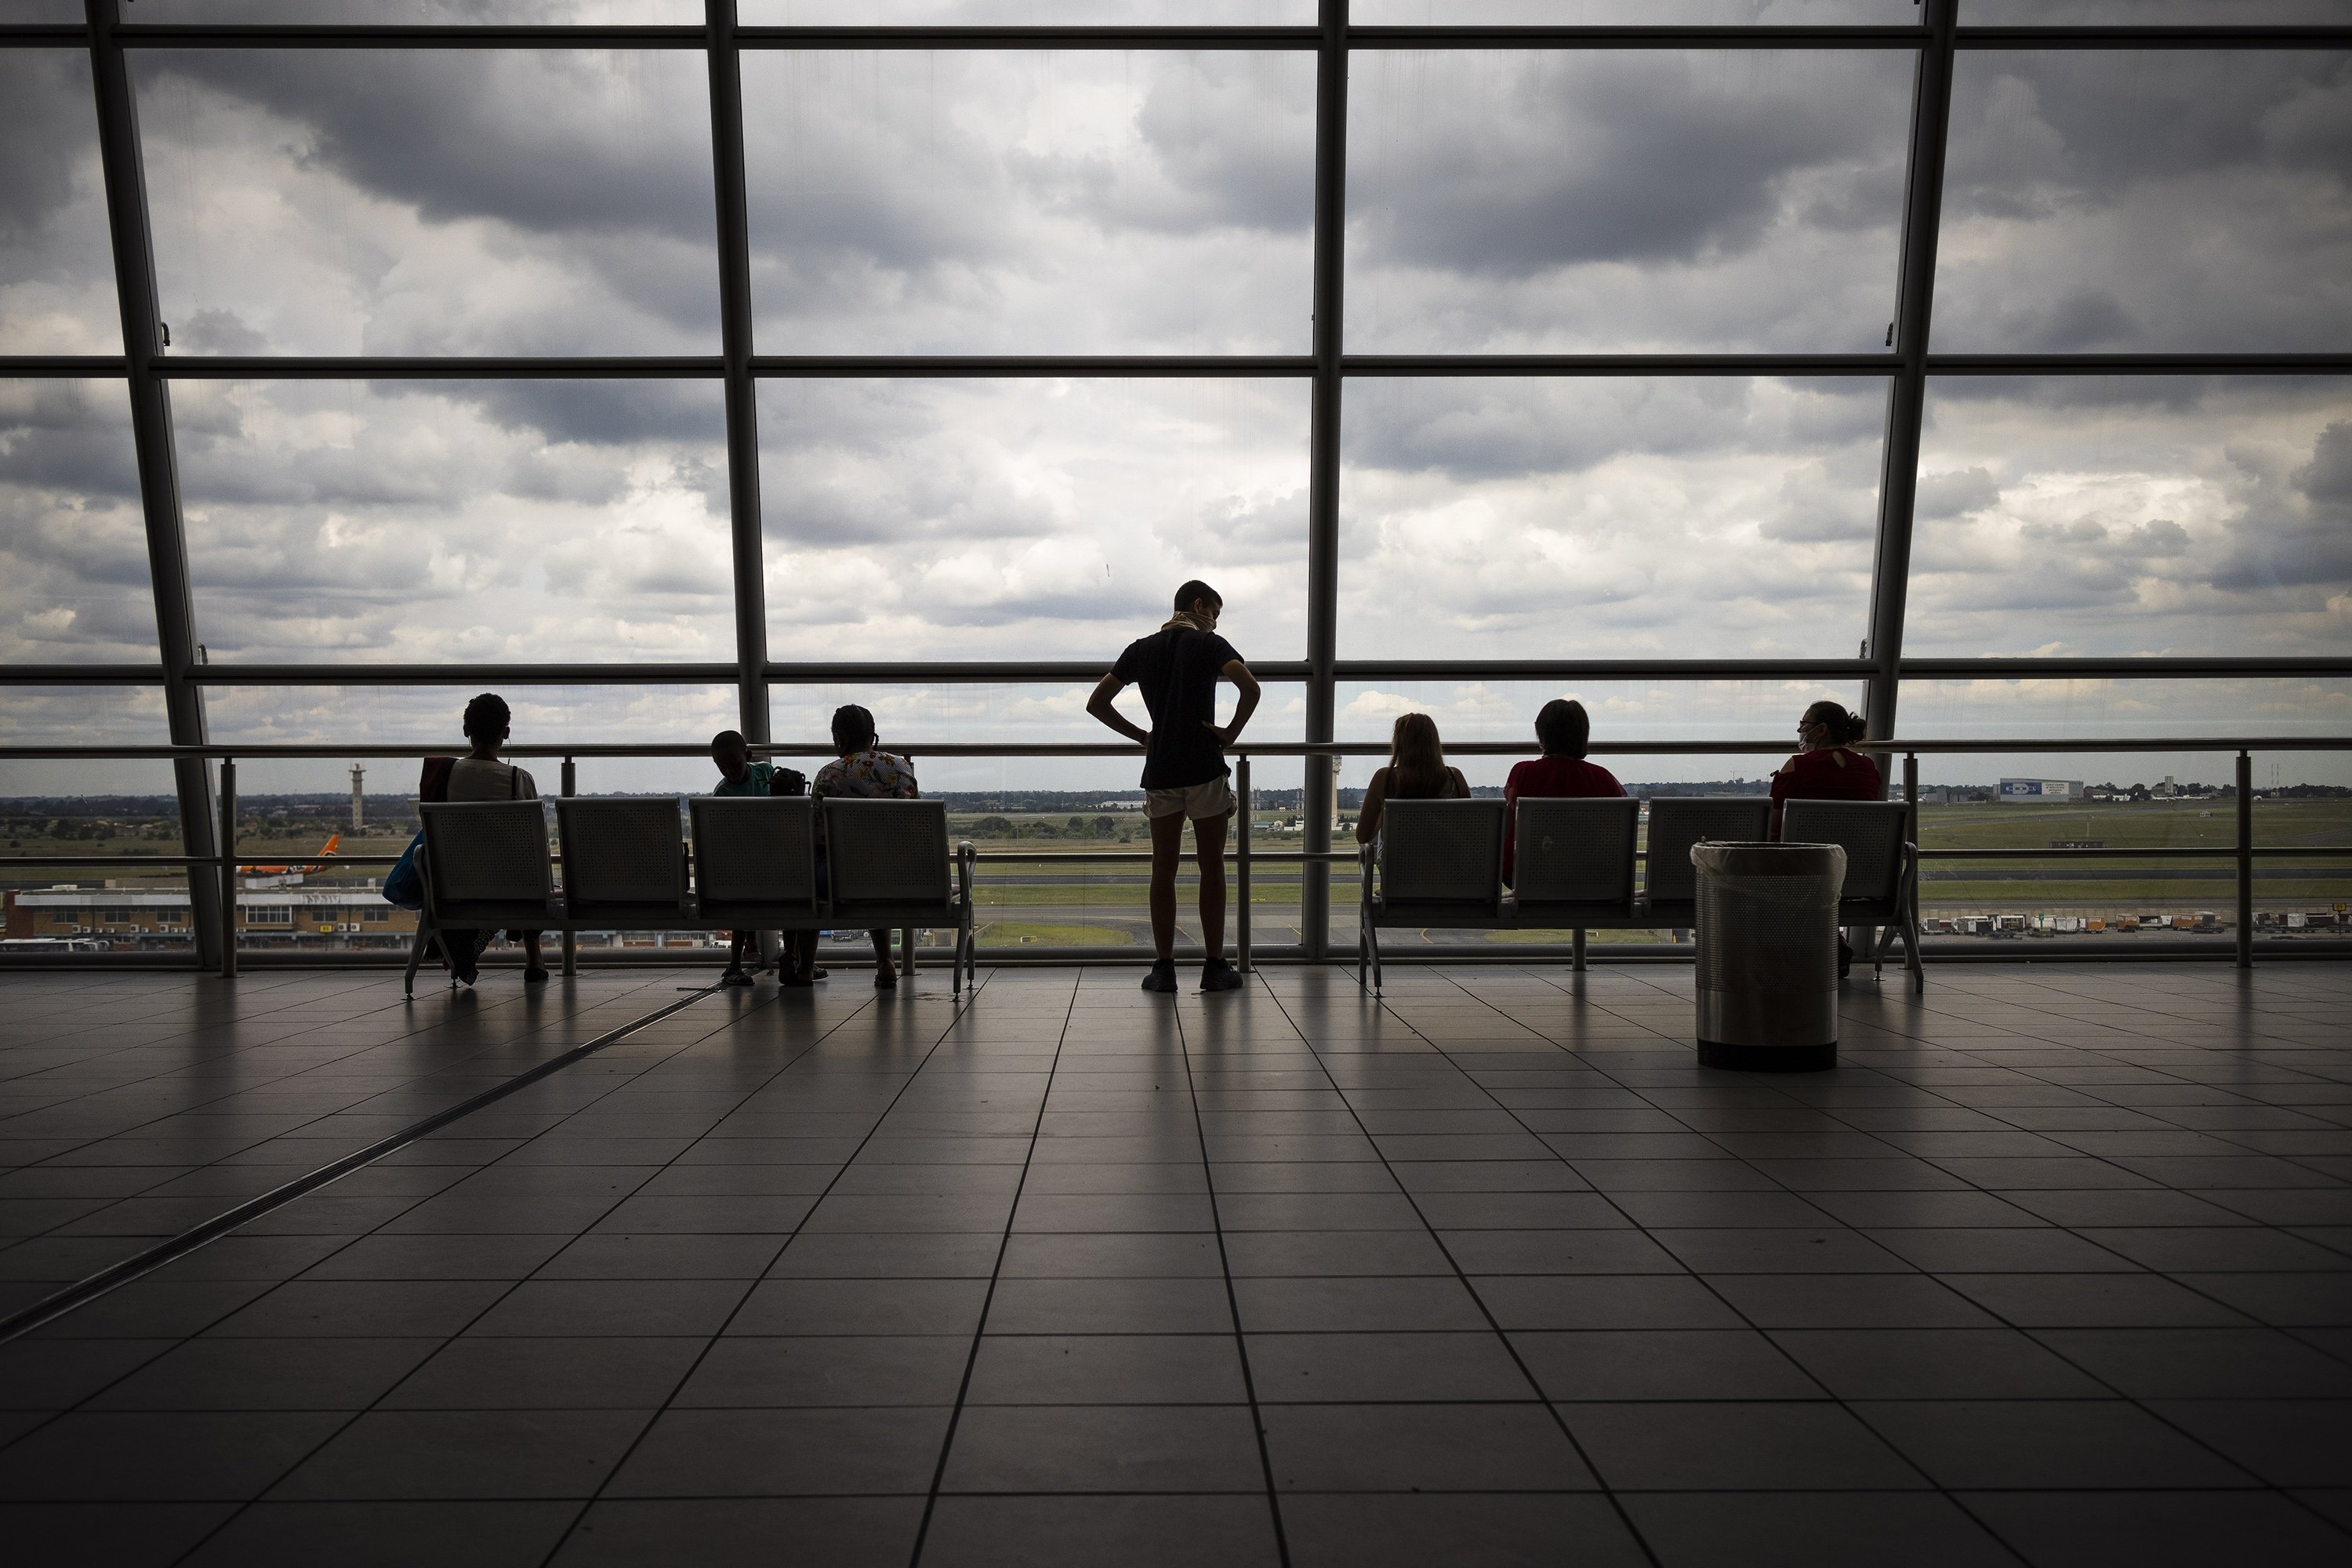 epa08897779 Passengers sit and watch aeroplanes take of and land from the observation deck at the OR Thambo International airport, Johannesburg, South Africa, 21 December 2020. Israel, Turkey, Germany, Saudi Arabia, and Switzerland have all halted air travel to and from South Africa as other airlines cancel flights from the United Kingdom as both countries are showing cases of a new varient of the Corivd-19 Corona virus 501.v2, a mutated SARS-CoV-2 variant which holds a higher transmission rate. The wave of cancellations impacting the UK is likely to extend to South Africa, as countries try and keep new, possibly more virulent, variants of the coronavirus out.  EPA/KIM LUDBROOK